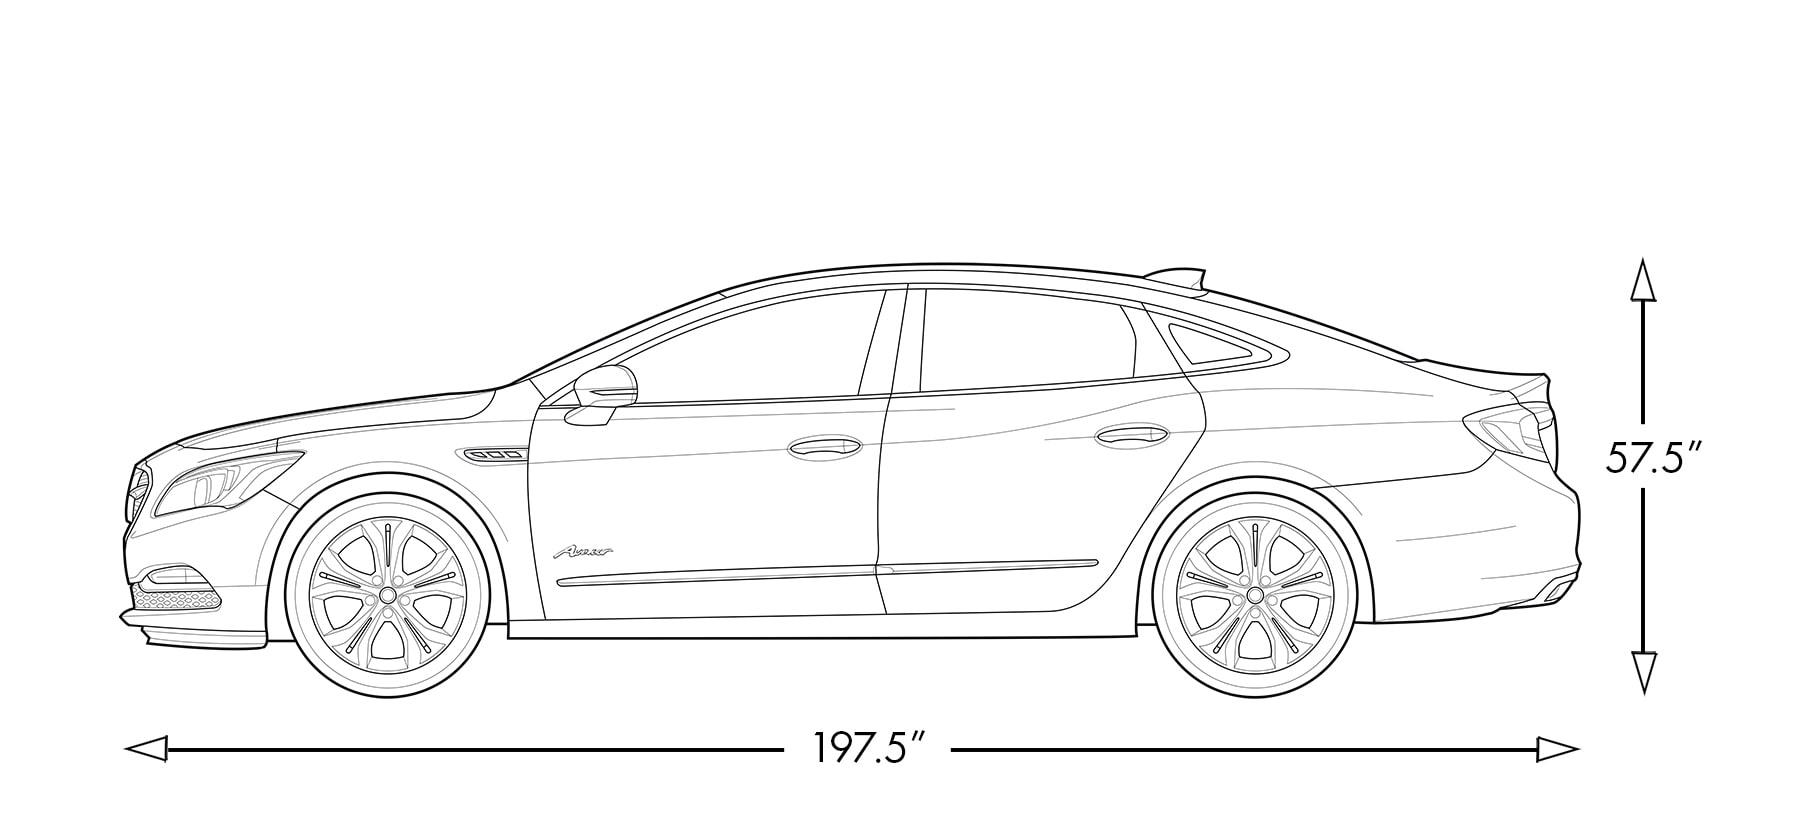 Diagram image showing height and length of the 2019 Buick LaCrosse Avenir full-size luxury sedan.